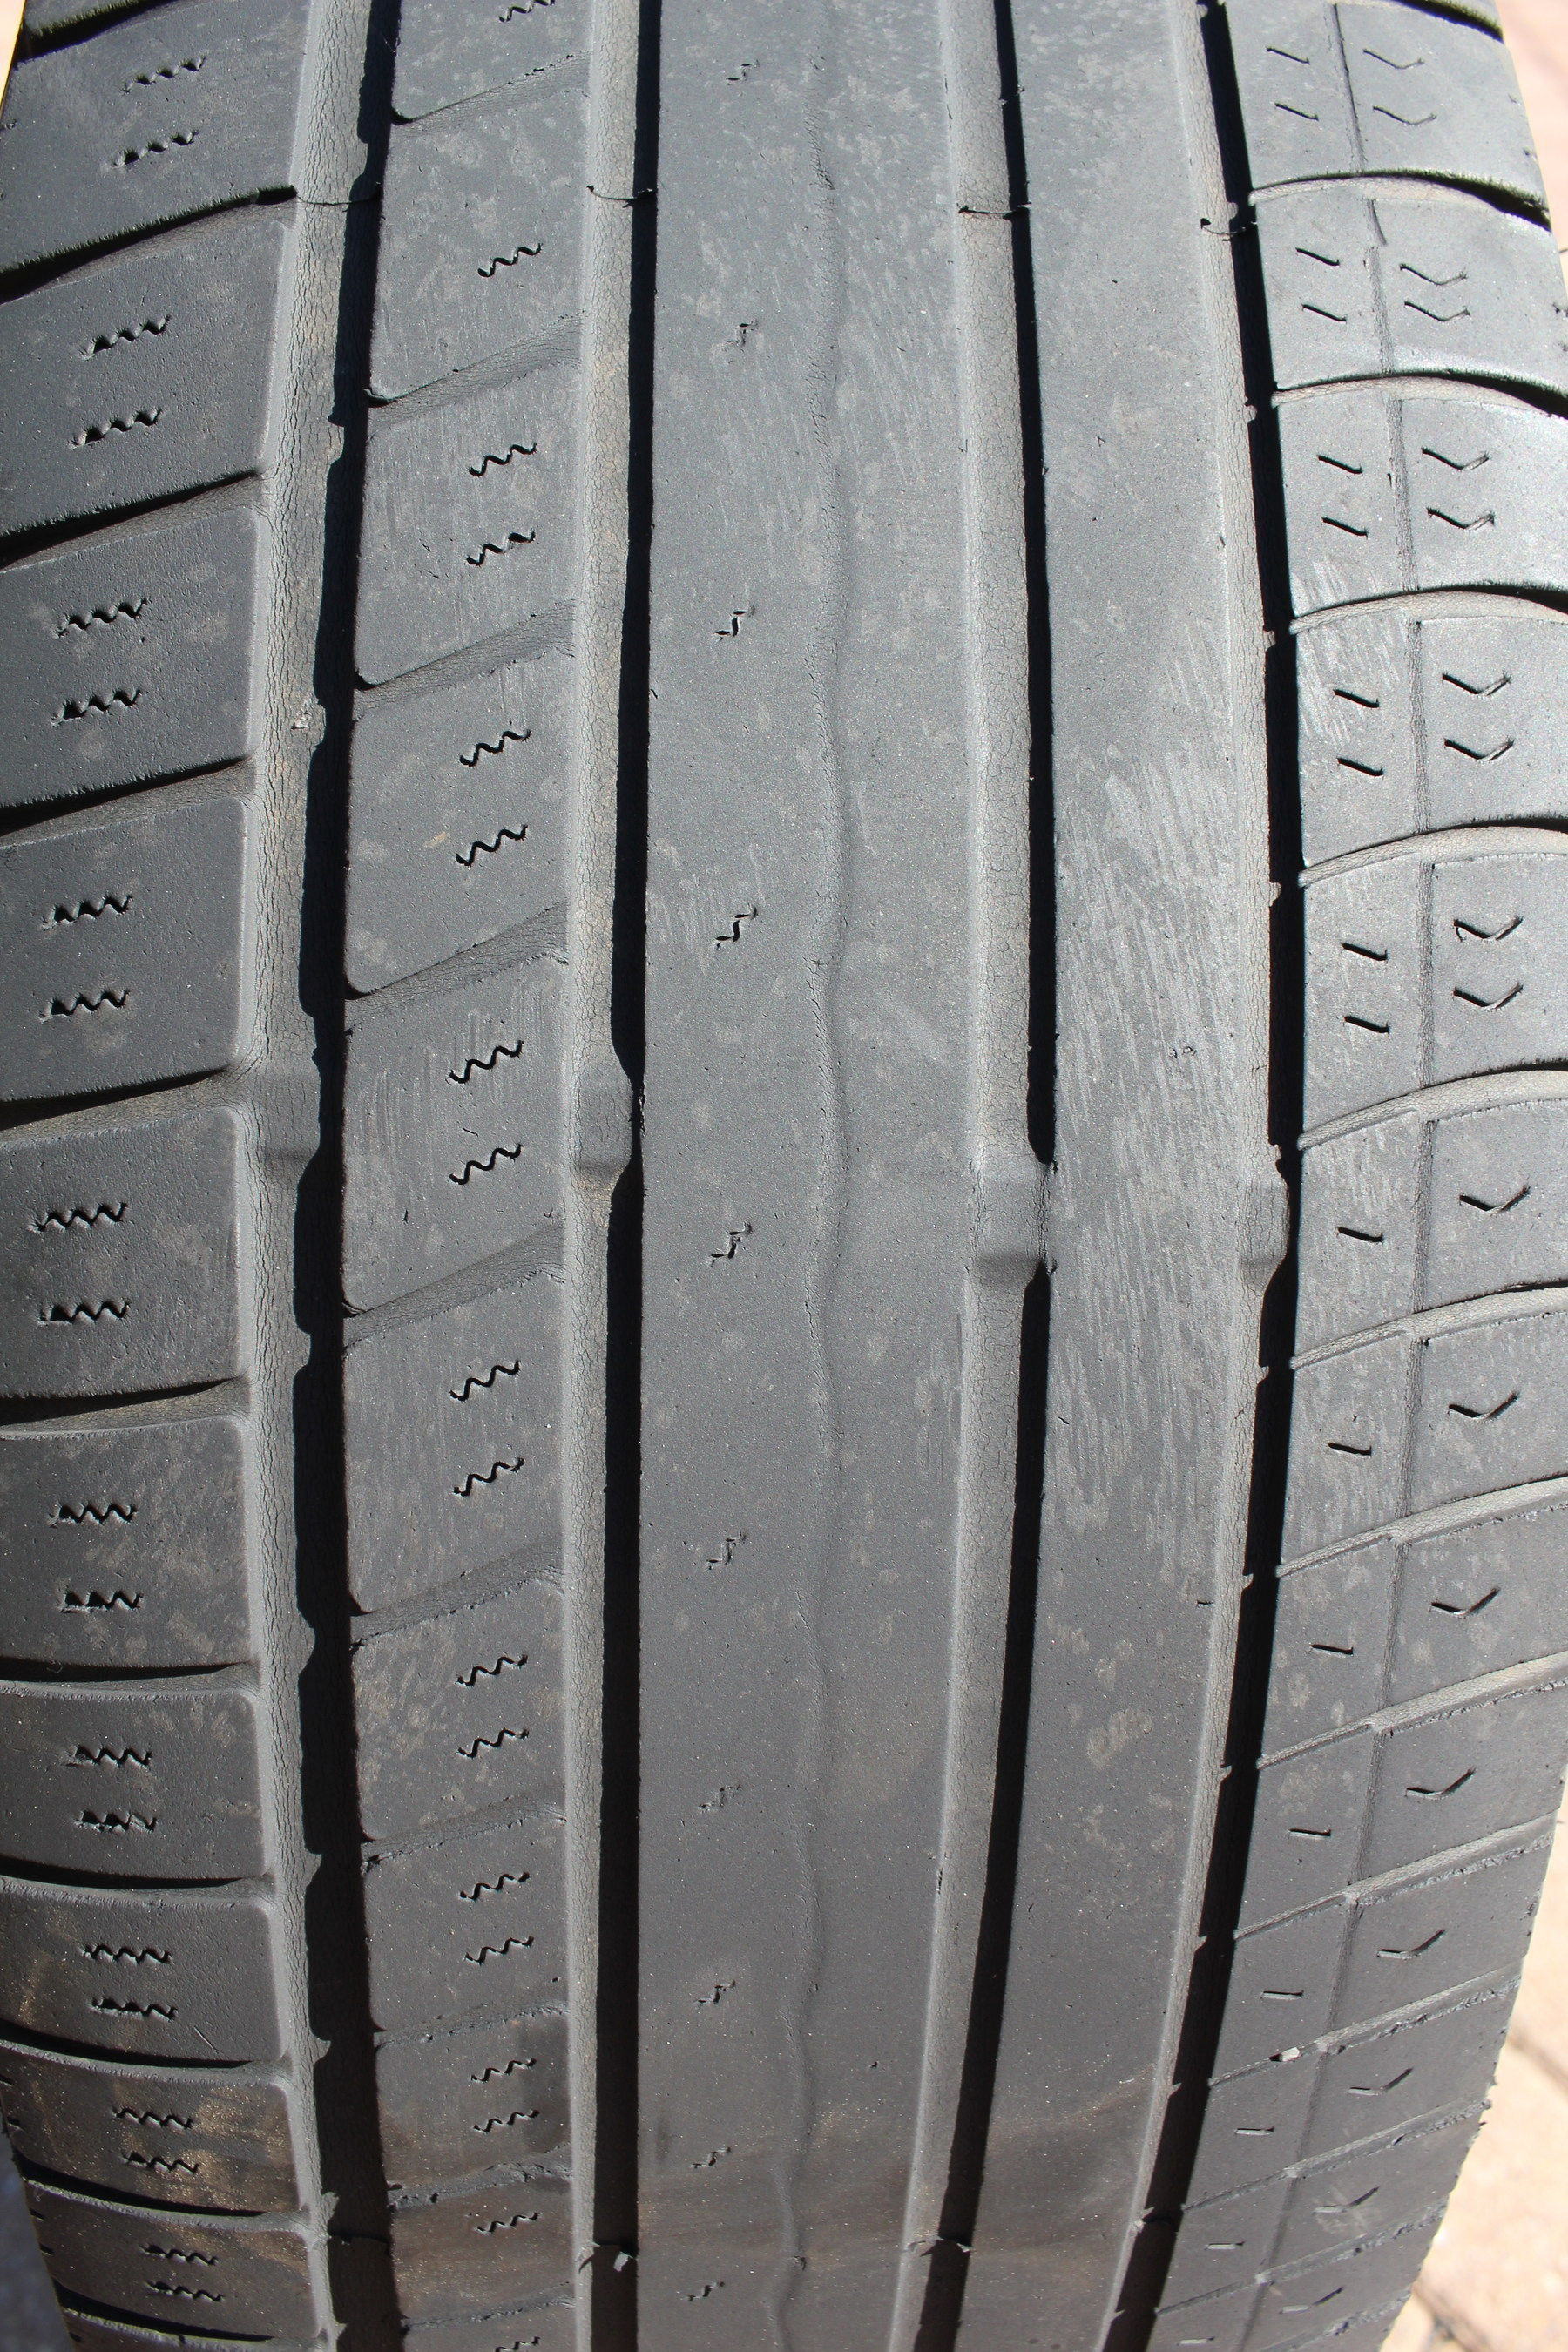 Bald Is Not Beautiful For Your Tires